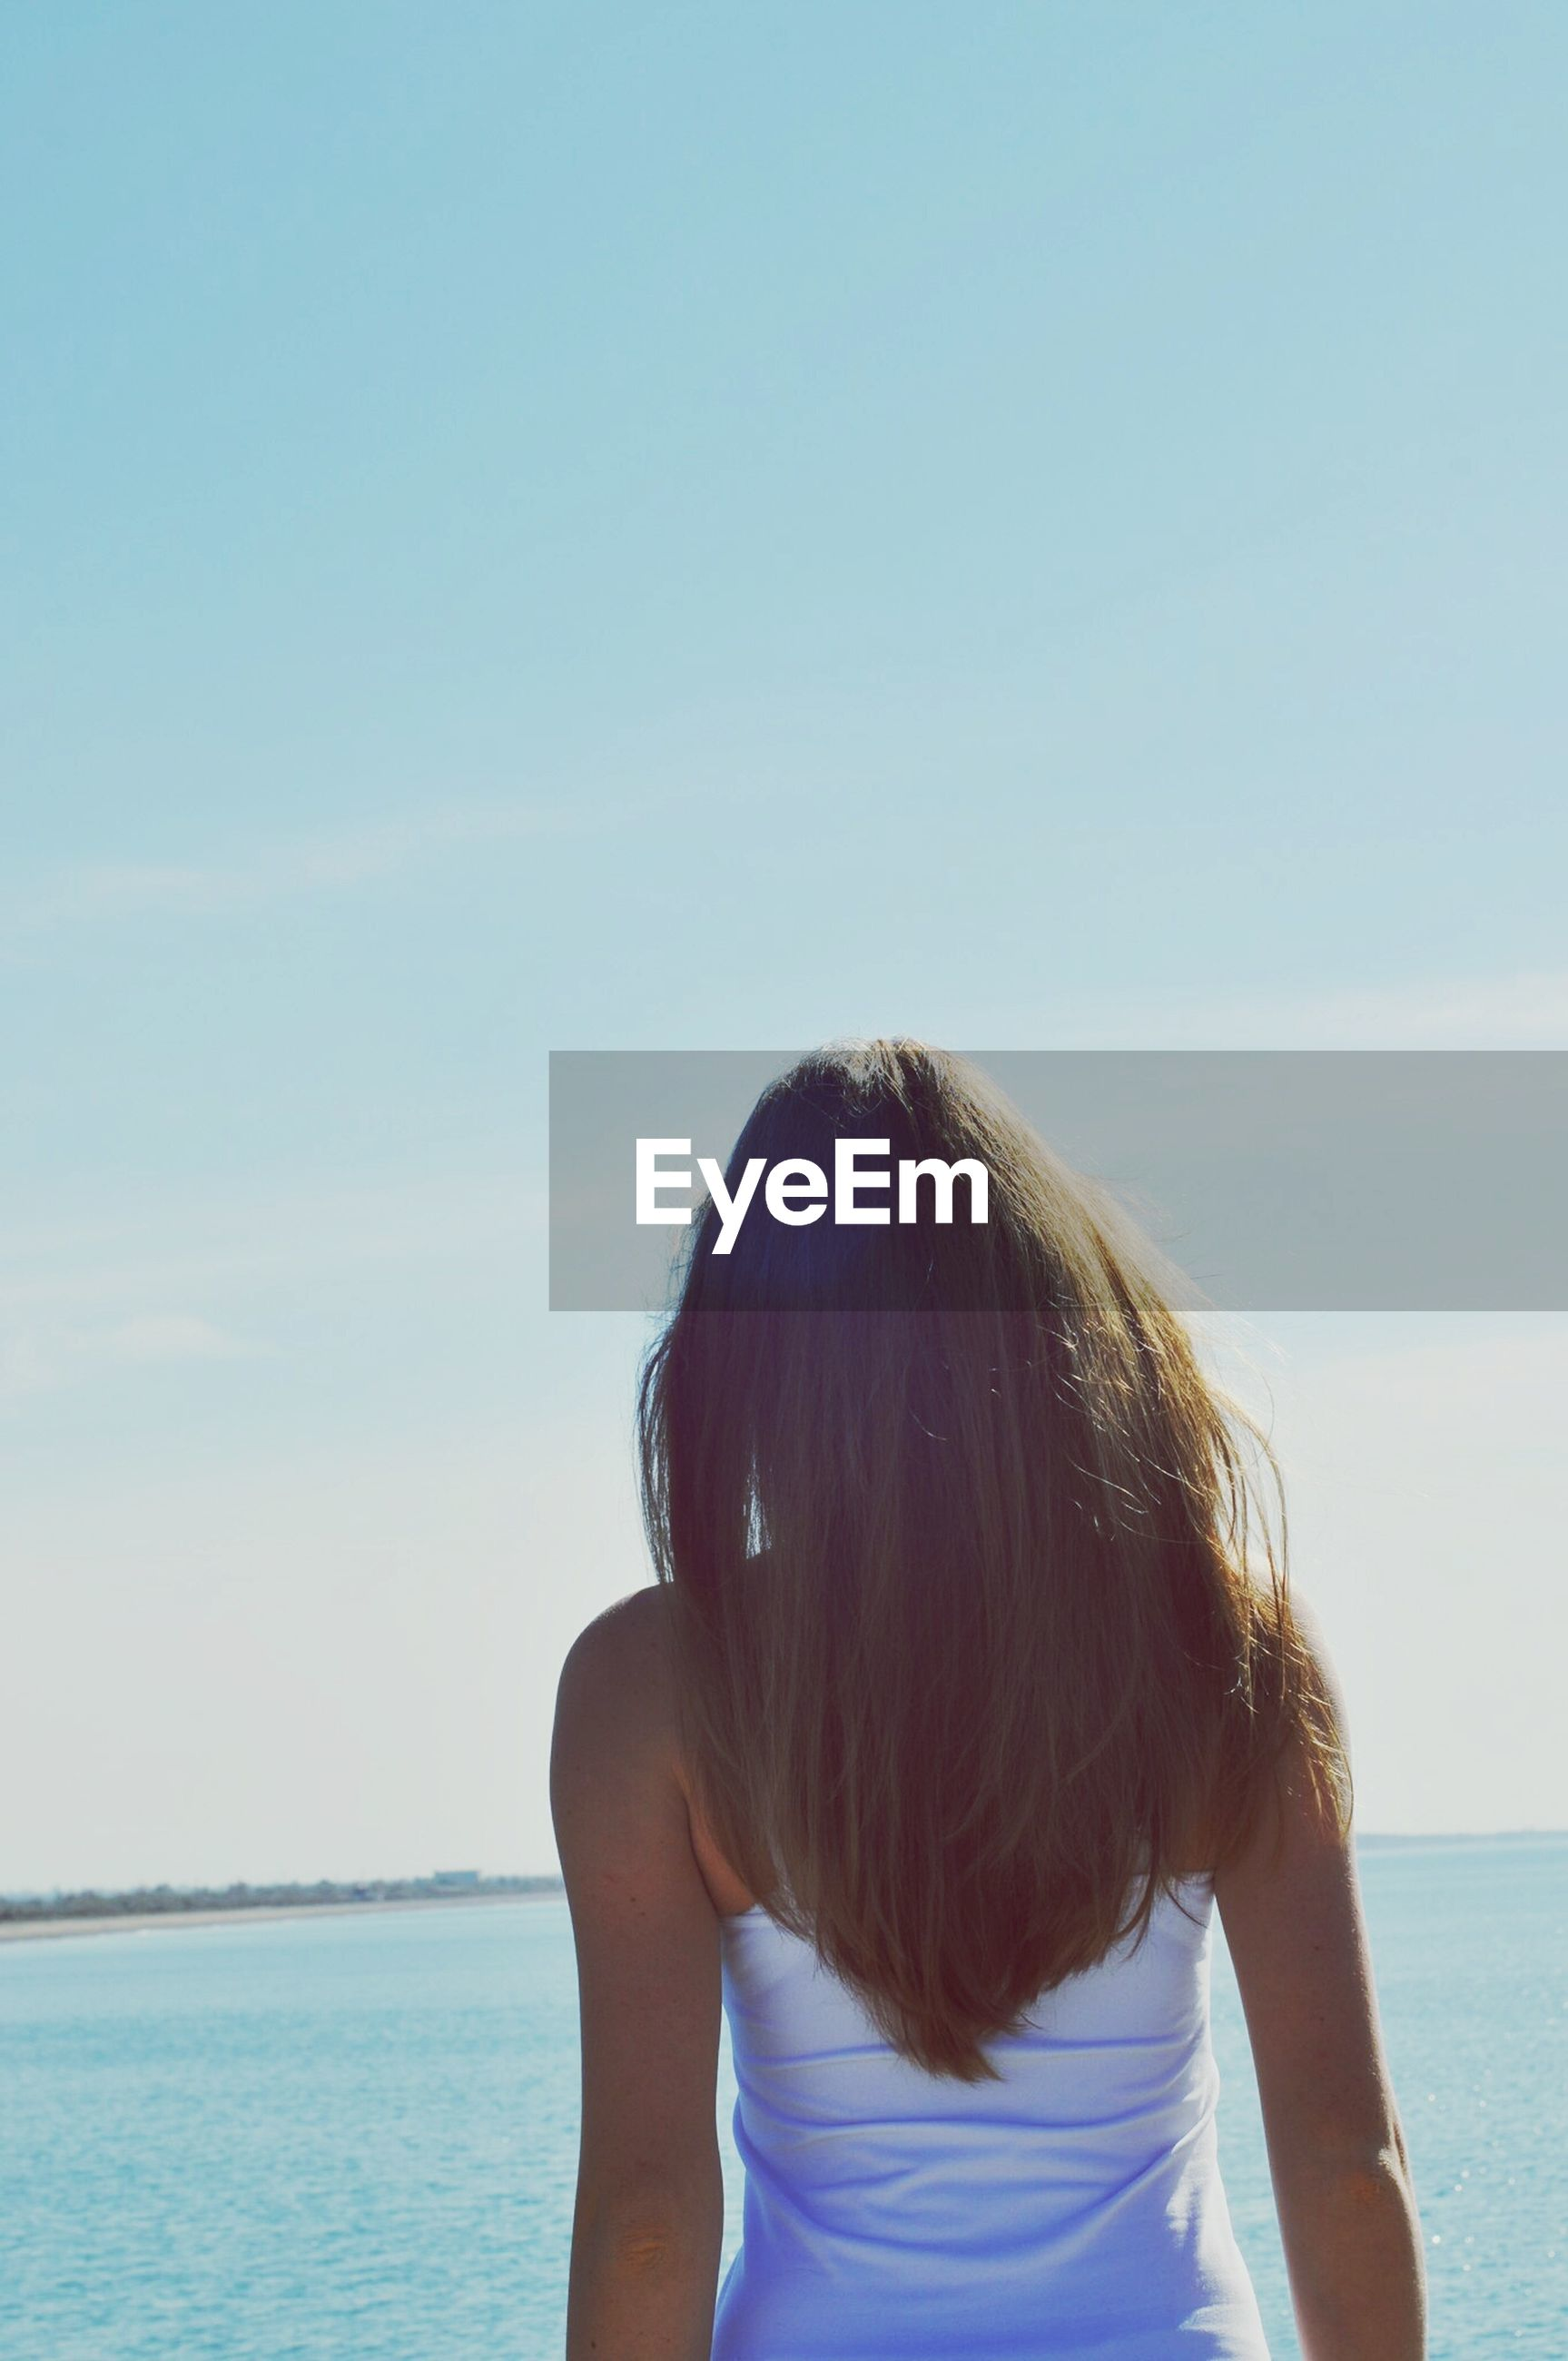 sea, water, rear view, horizon over water, beach, lifestyles, leisure activity, sky, headshot, tranquility, shore, scenics, person, vacations, nature, beauty in nature, tranquil scene, long hair